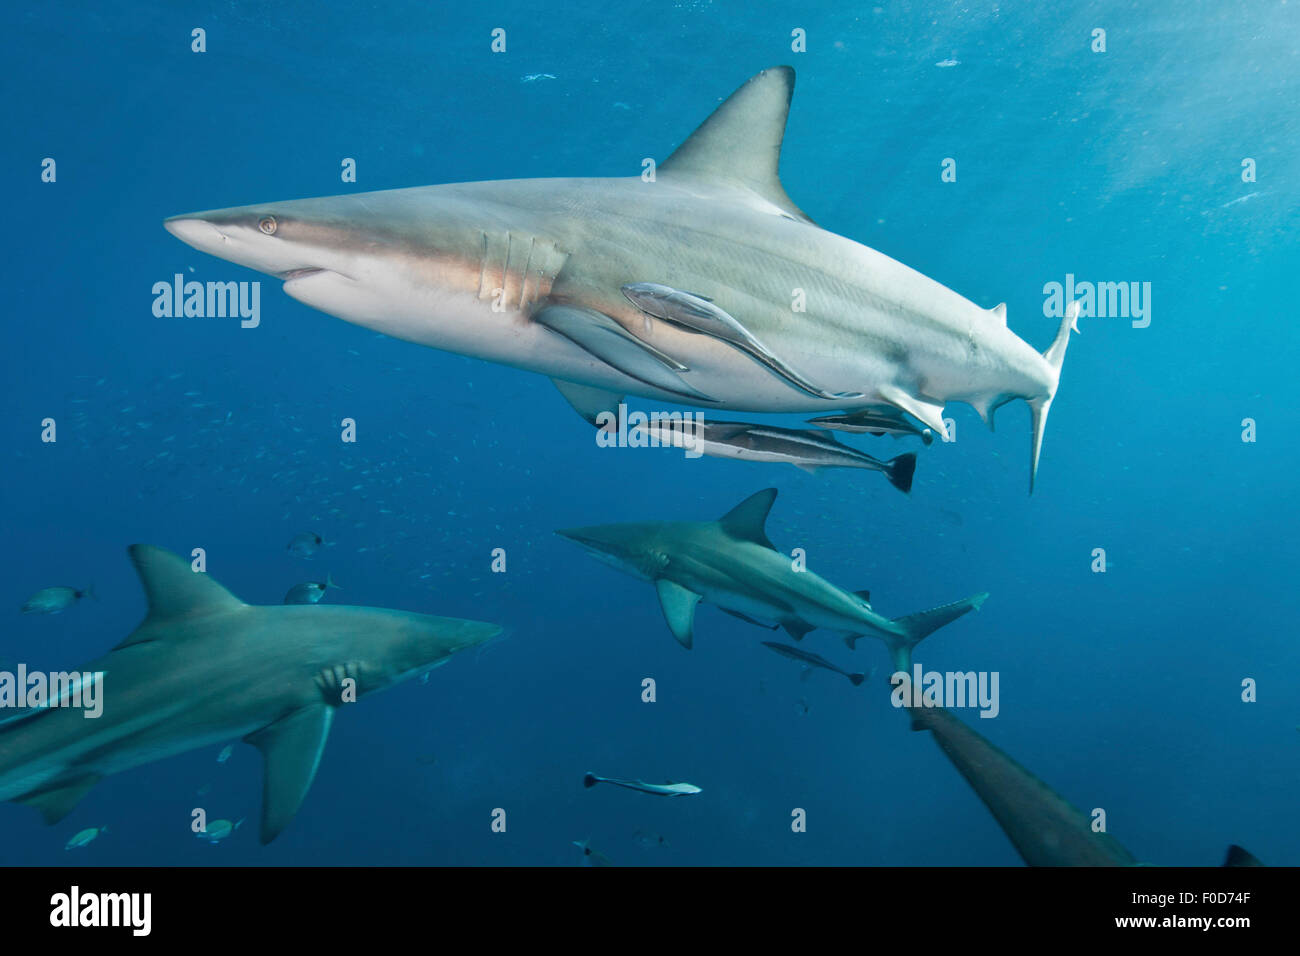 Several oceanic blacktip sharks swim by with remora in tow, Aliwal Shoal, Umkomaas, KwaZulu-Natal, South Africa. Stock Photo